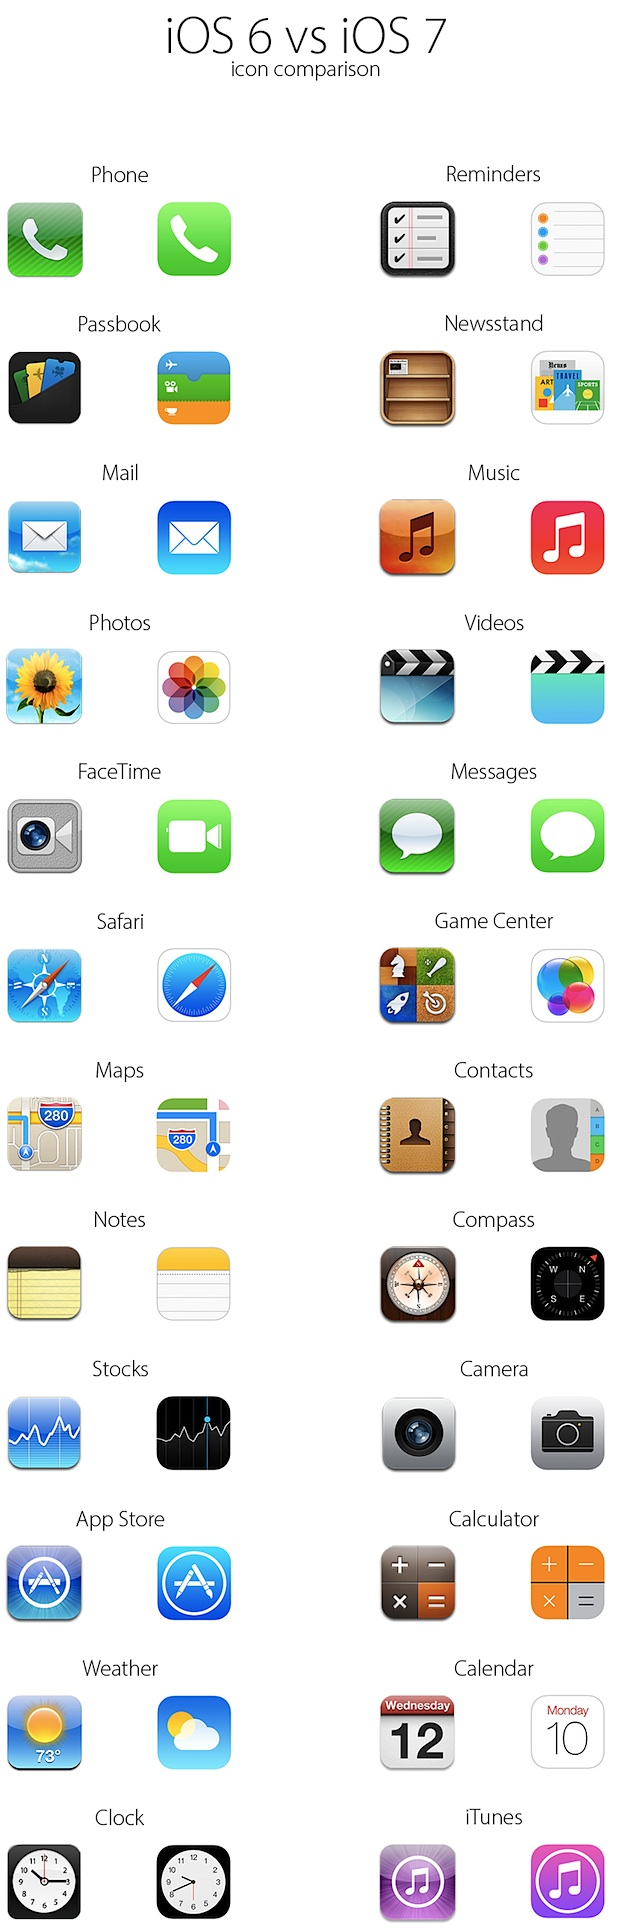 iOS 7 icons vs iOS 6 icons